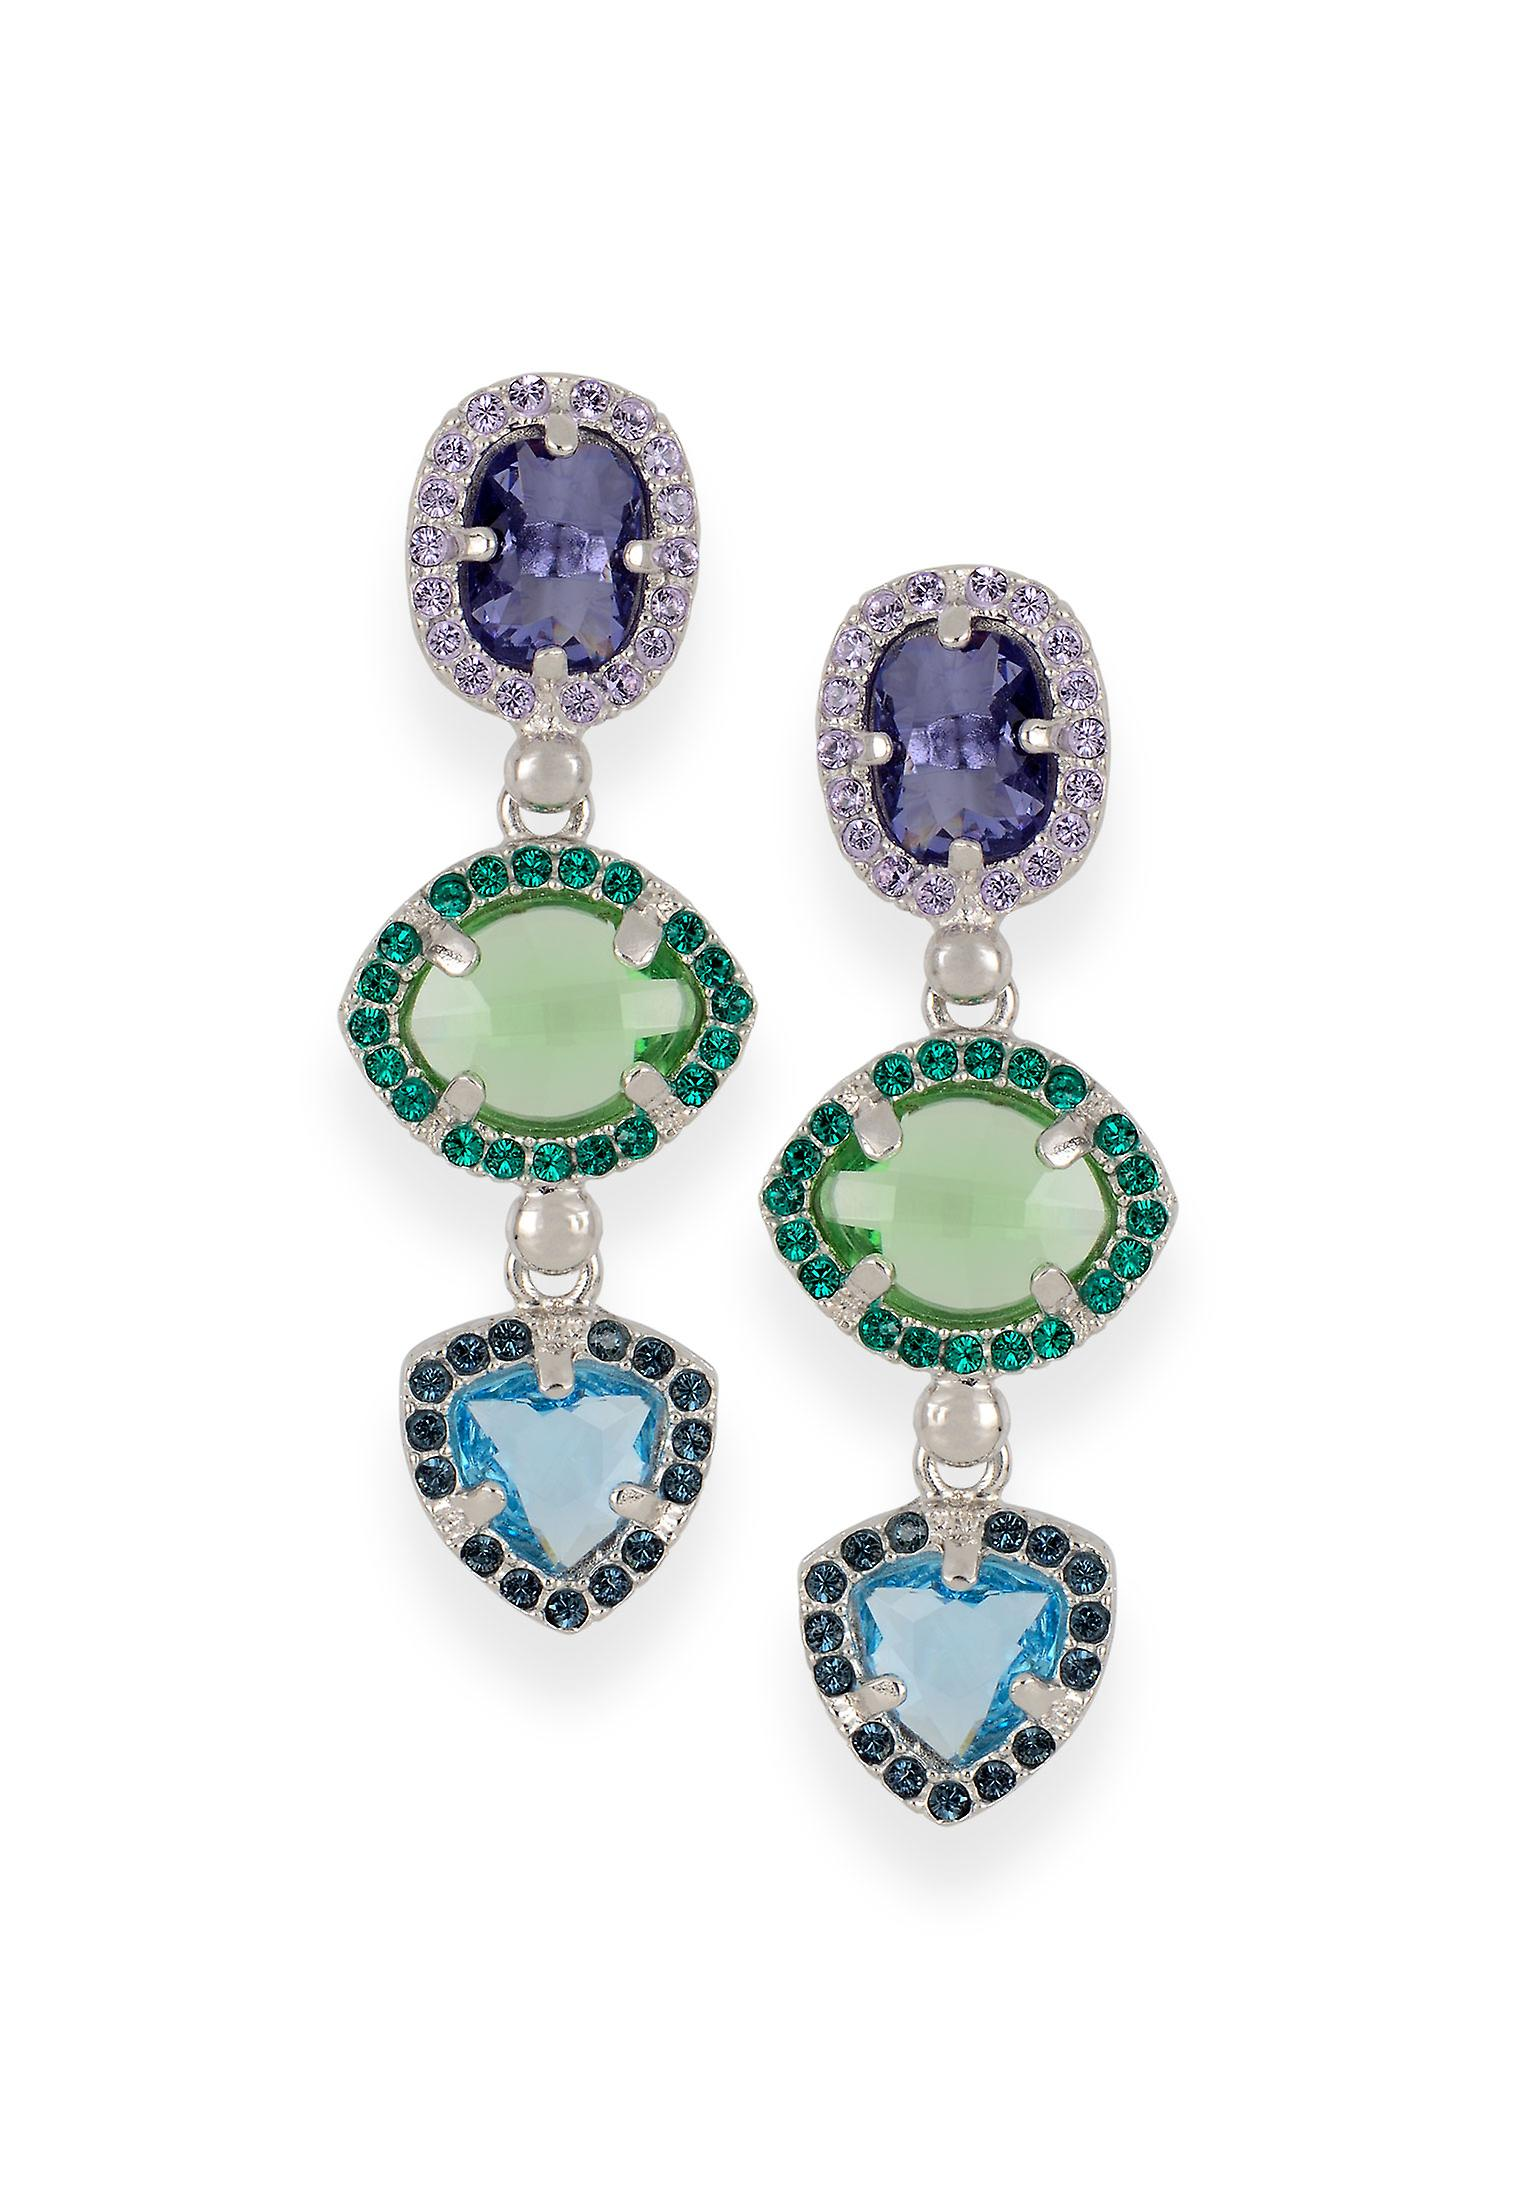 Multicolor earrings with crystals from Swarovski 4666